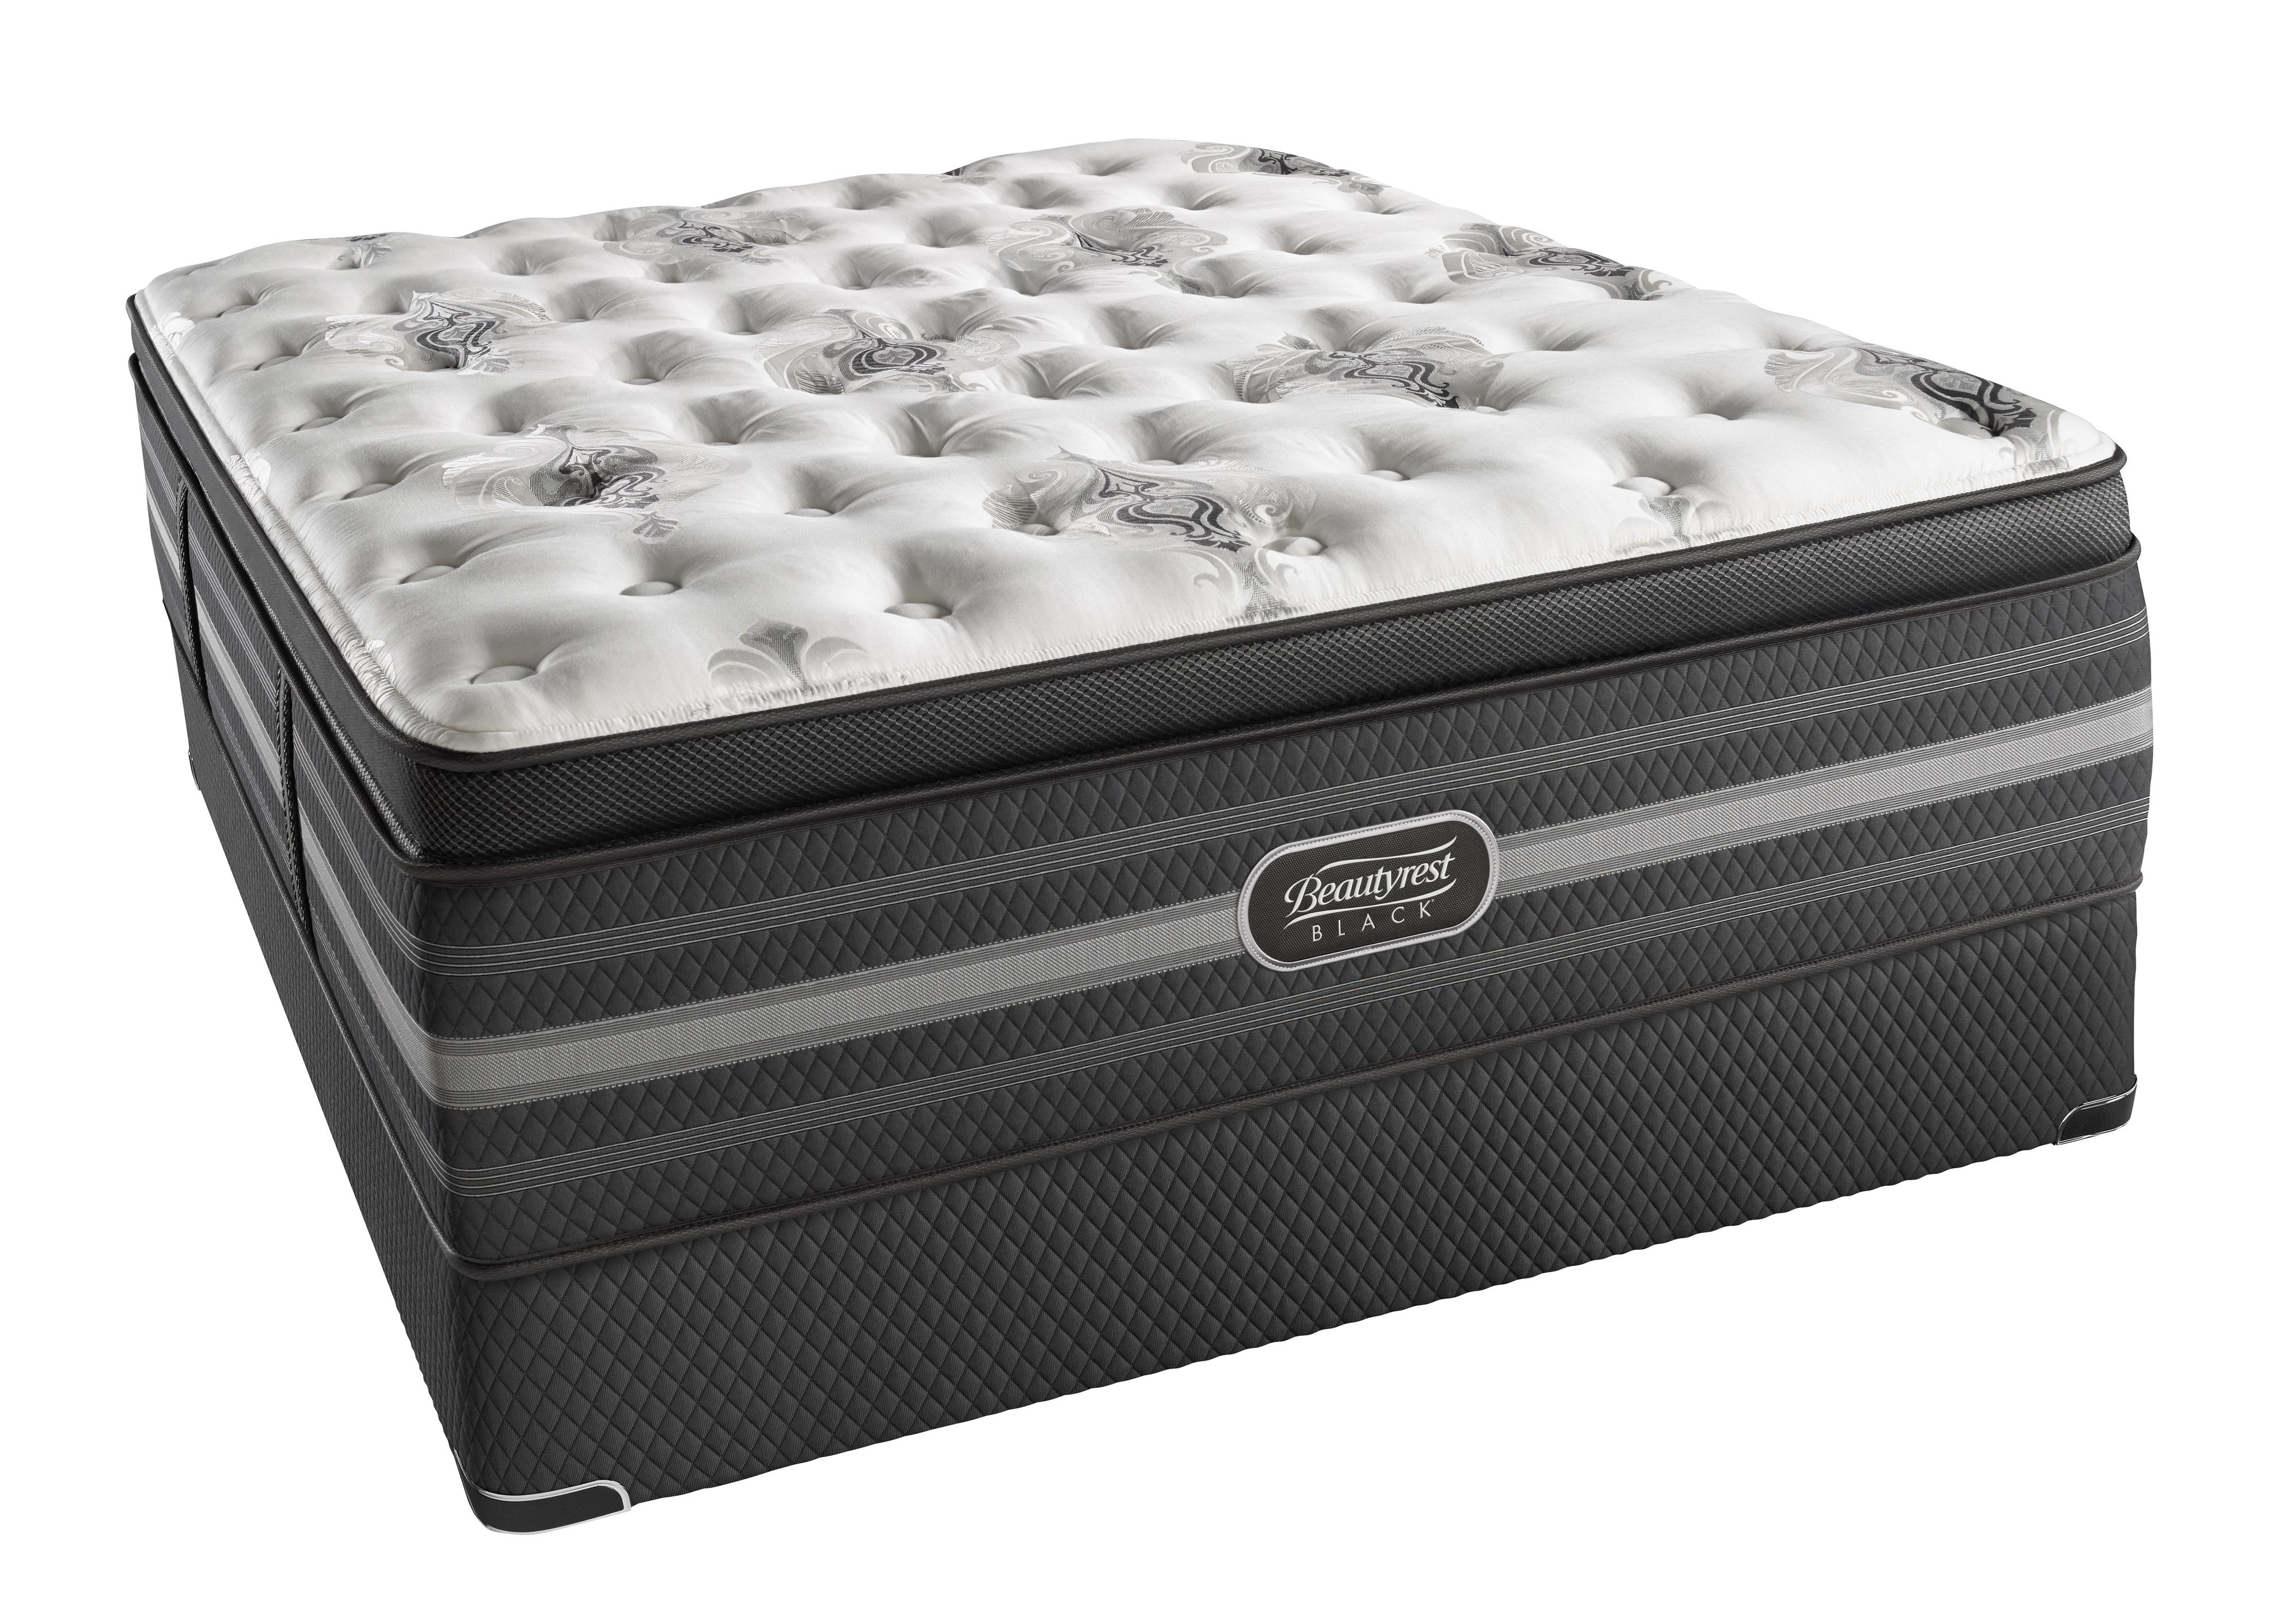 Simmons BR Black Sonya Queen Luxury Firm P.T. Mattress Set, Adj - Item Number: BRBLUXFPT-Q+SM2-Q